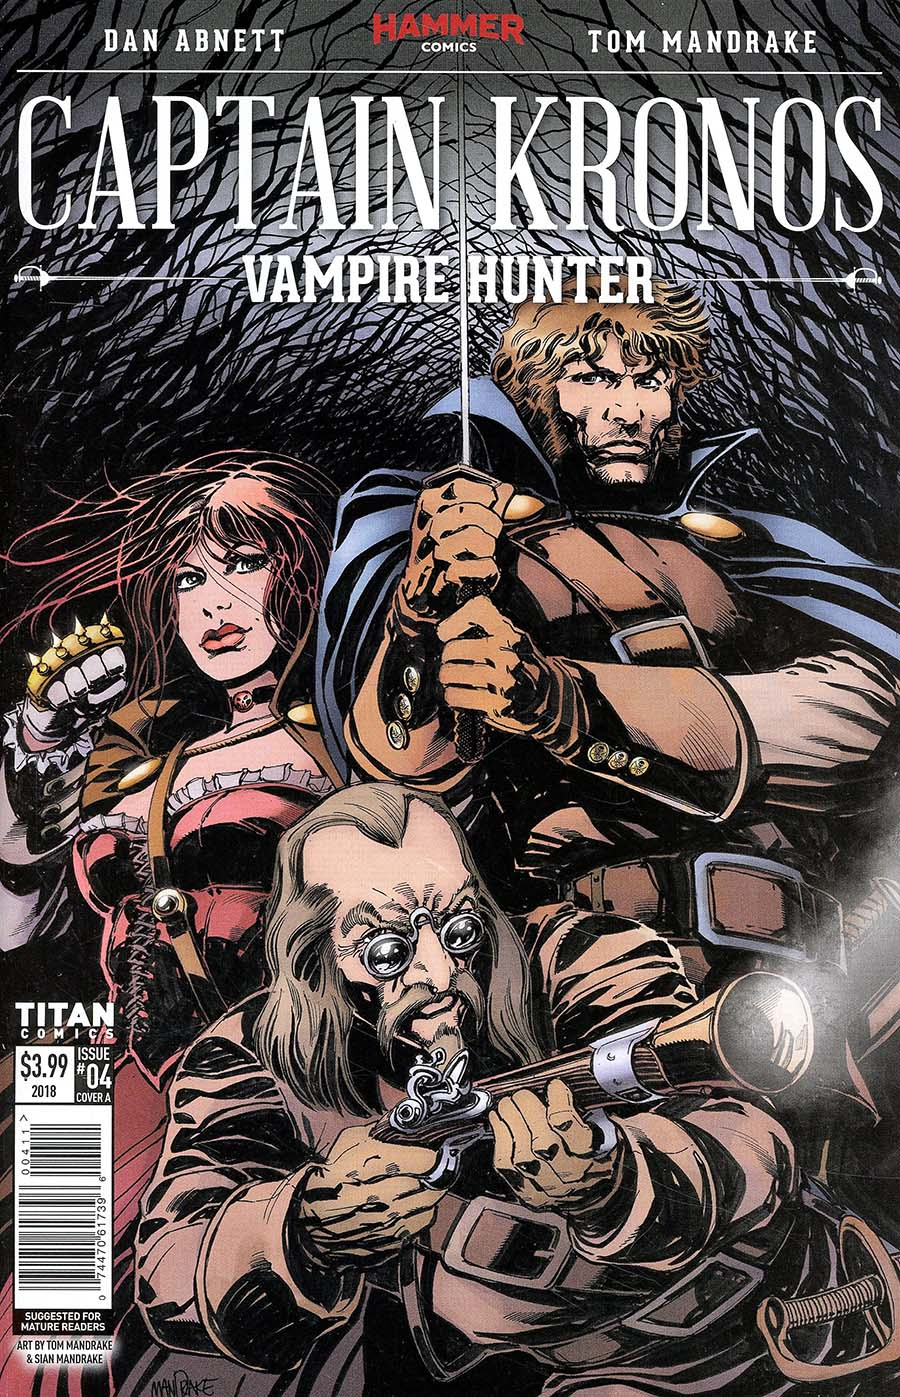 Hammer Comics Captain Kronos Vampire Hunter #4 Cover A Regular Tom Mandrake Cover